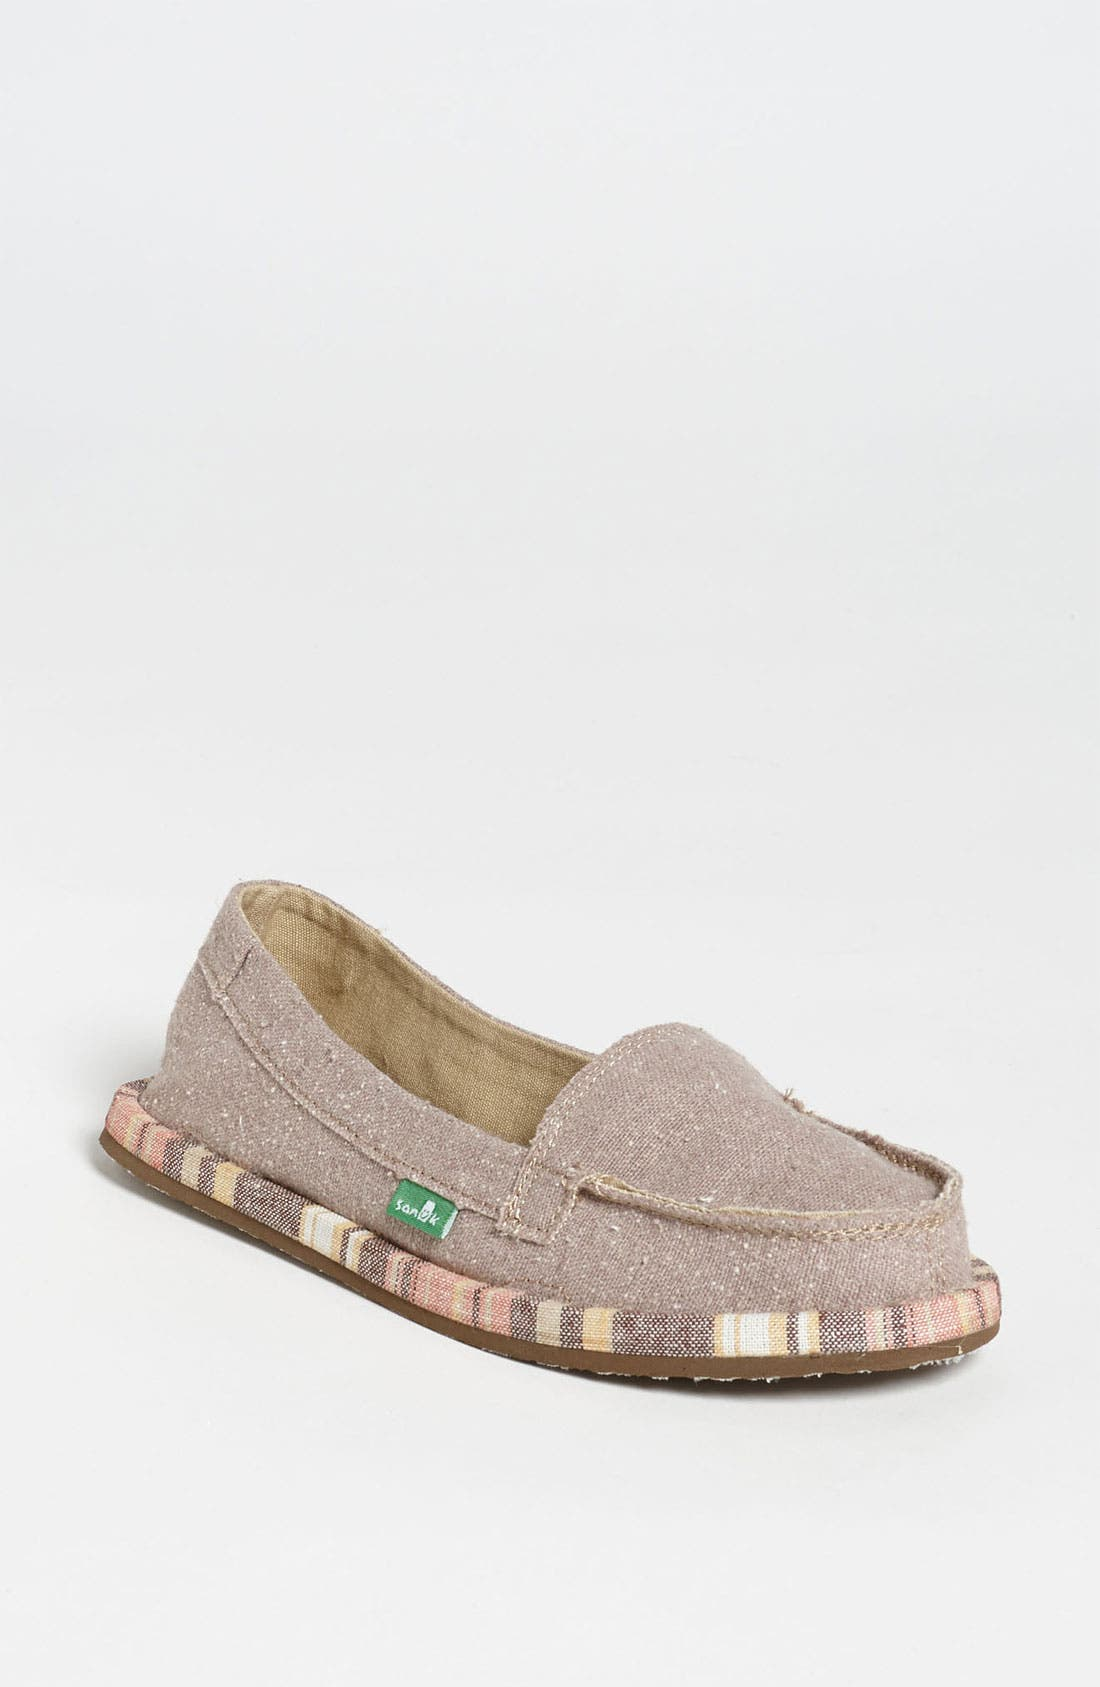 'Shorty' Slip-On,                             Main thumbnail 1, color,                             250